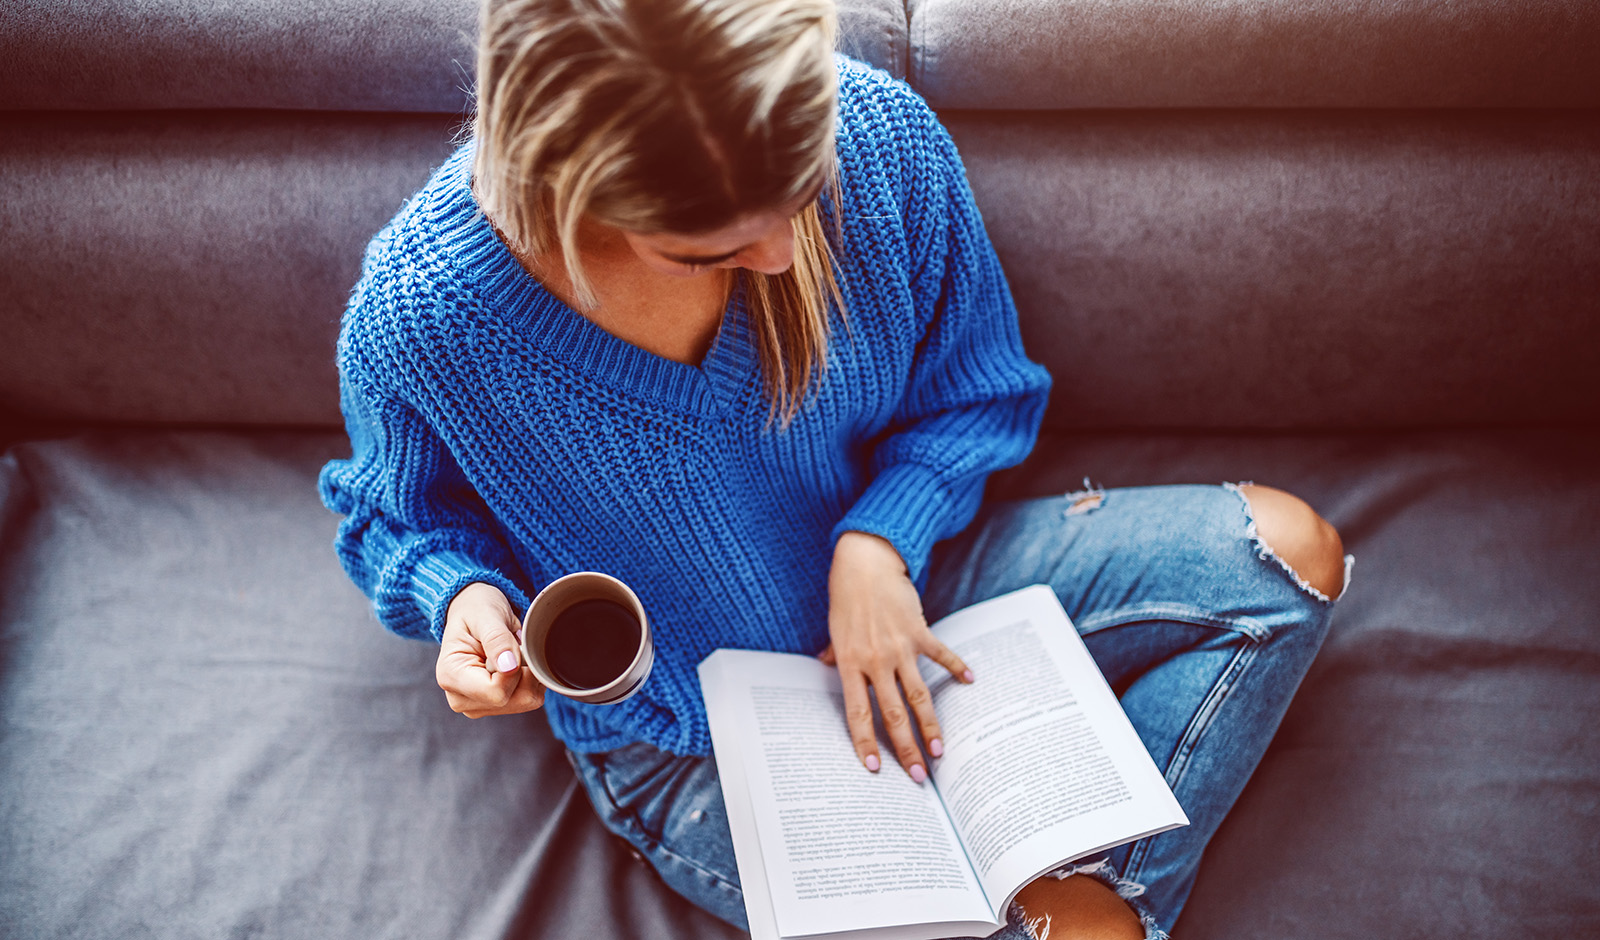 importance-of-self-care-and-taking-care-of-yourself-main-image-girl-journaling